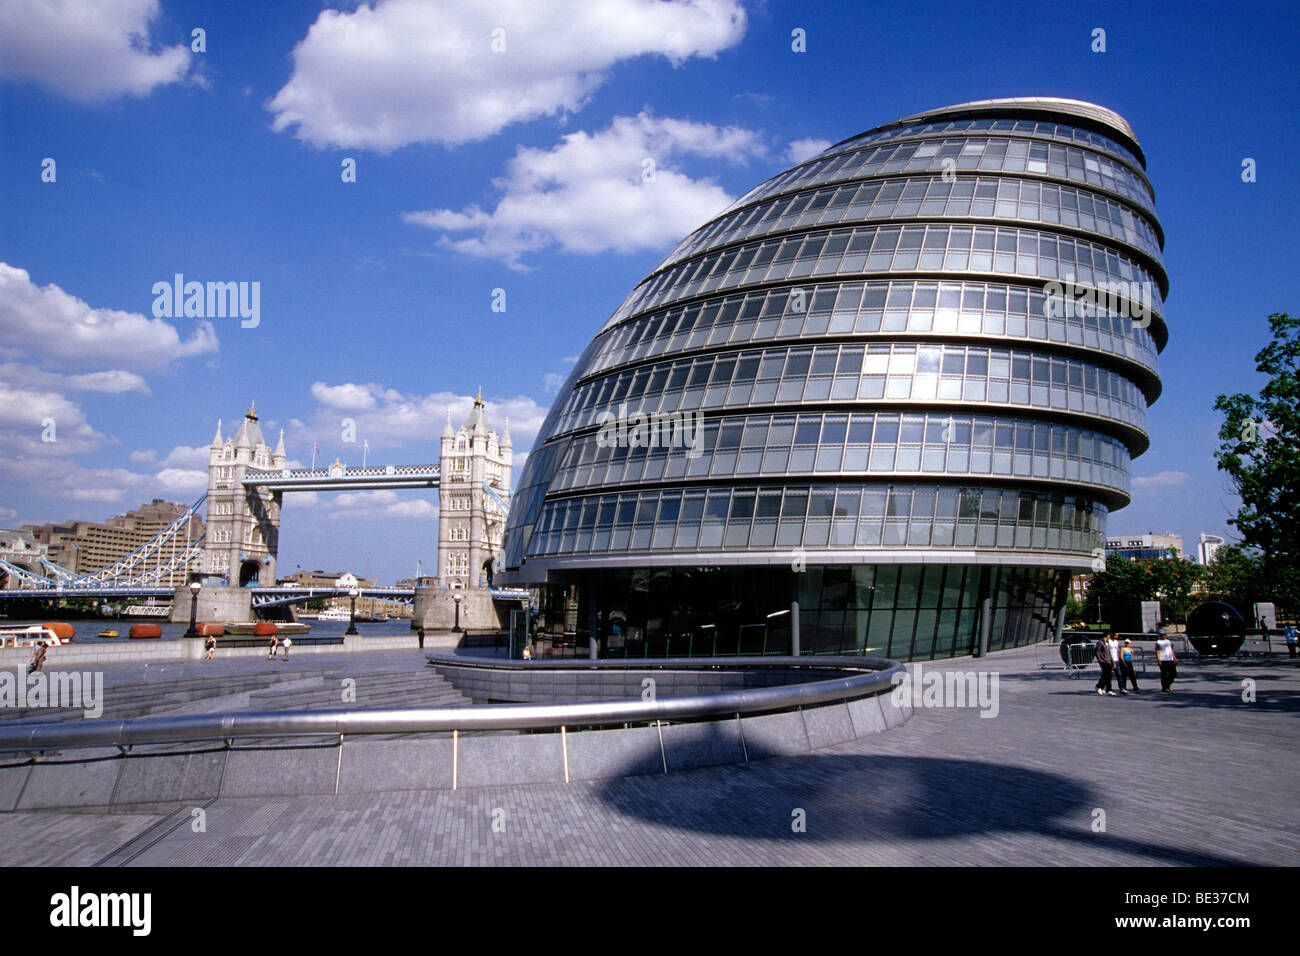 stock photo tower bridge and city hall designed by the architect norman foster futuristic city hall on the south bank of the thames bermo